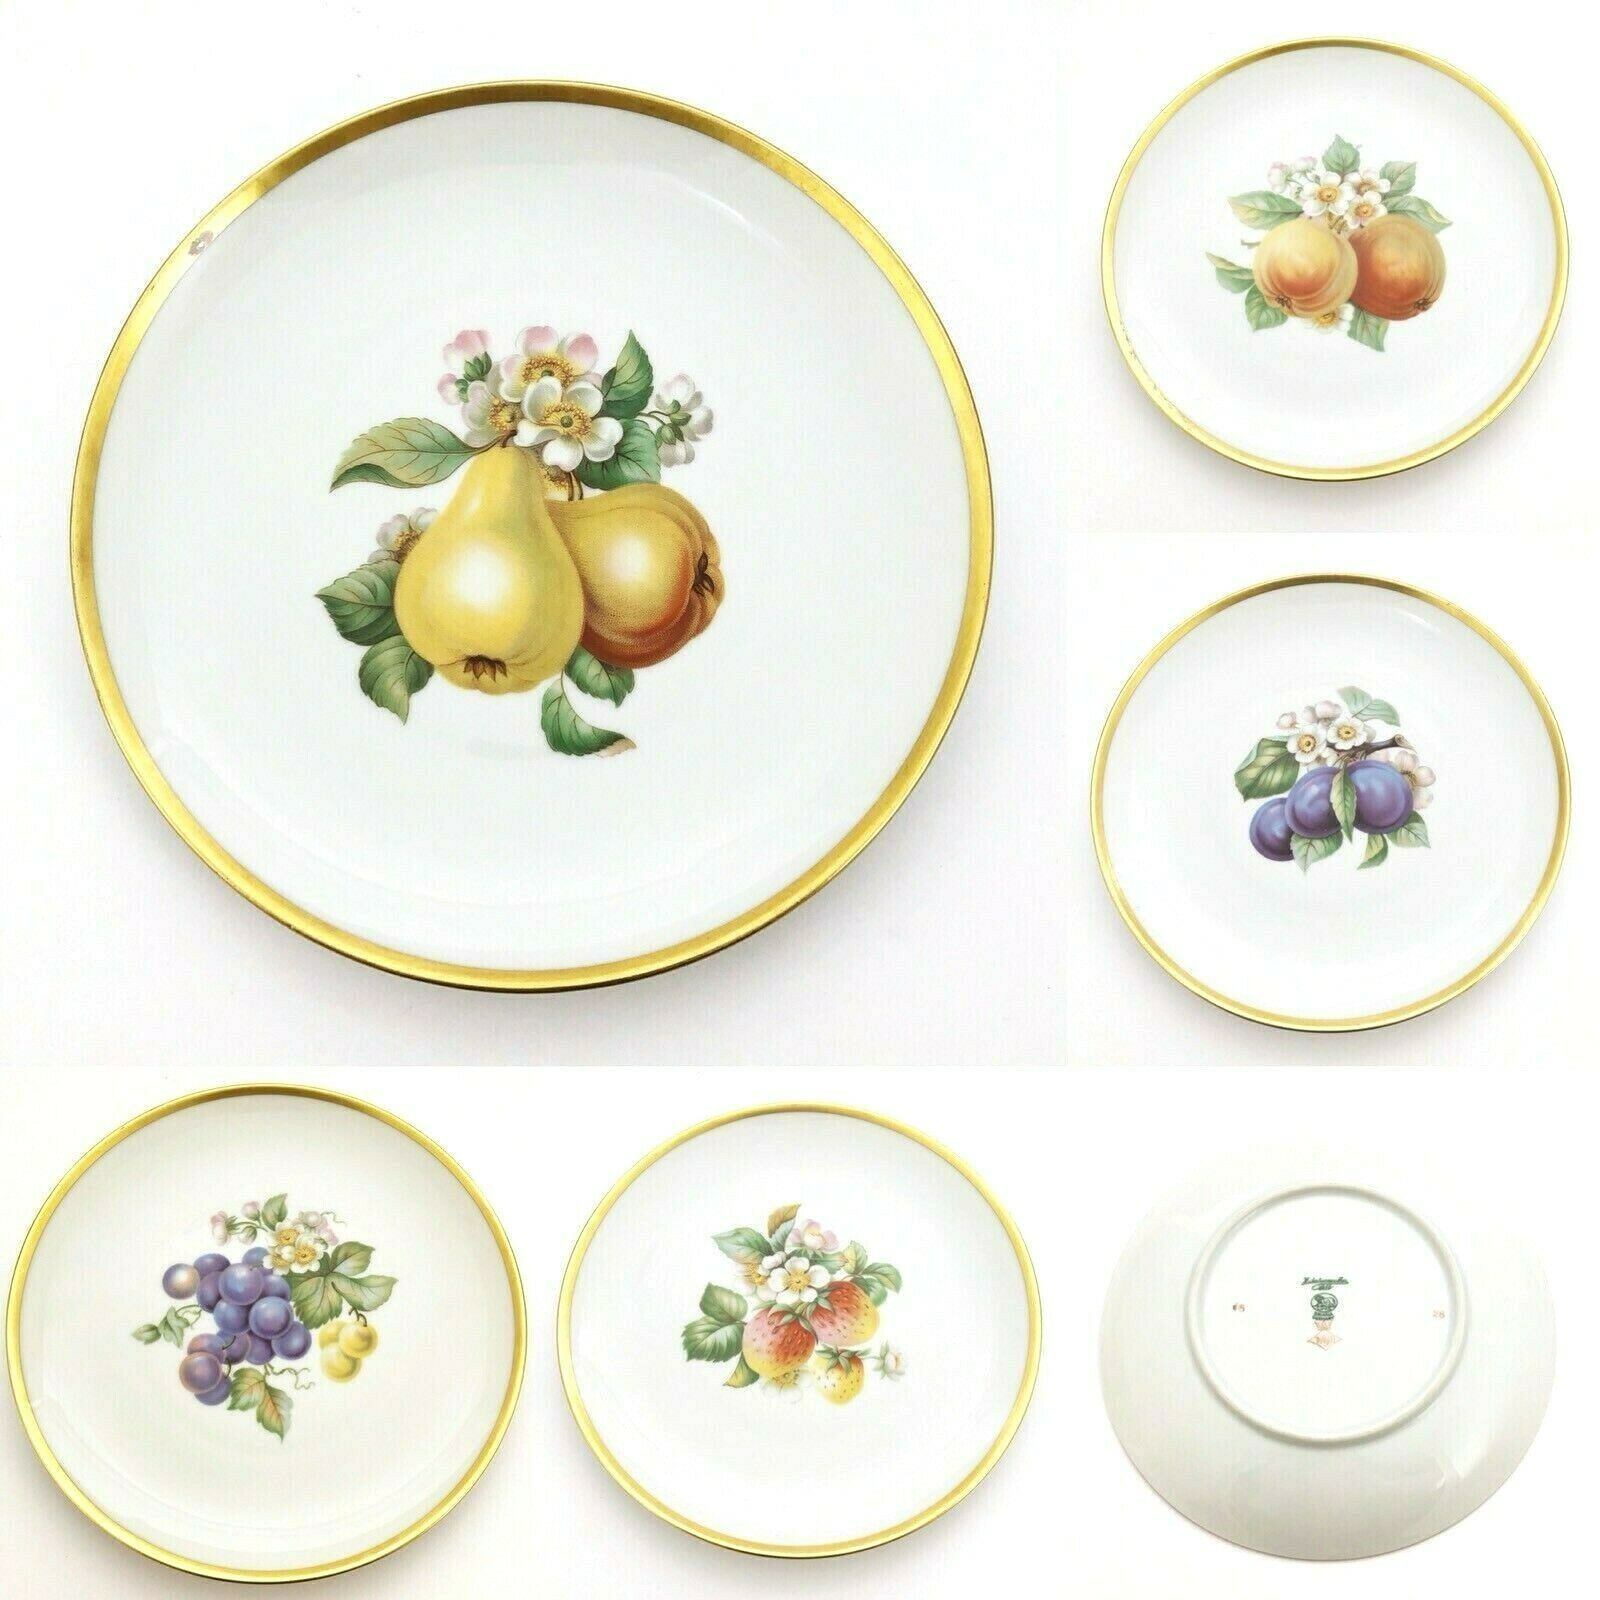 Vintage Hutschenreuther Decorative Plates with Hand Painted Fruits PASCO  - $75.65